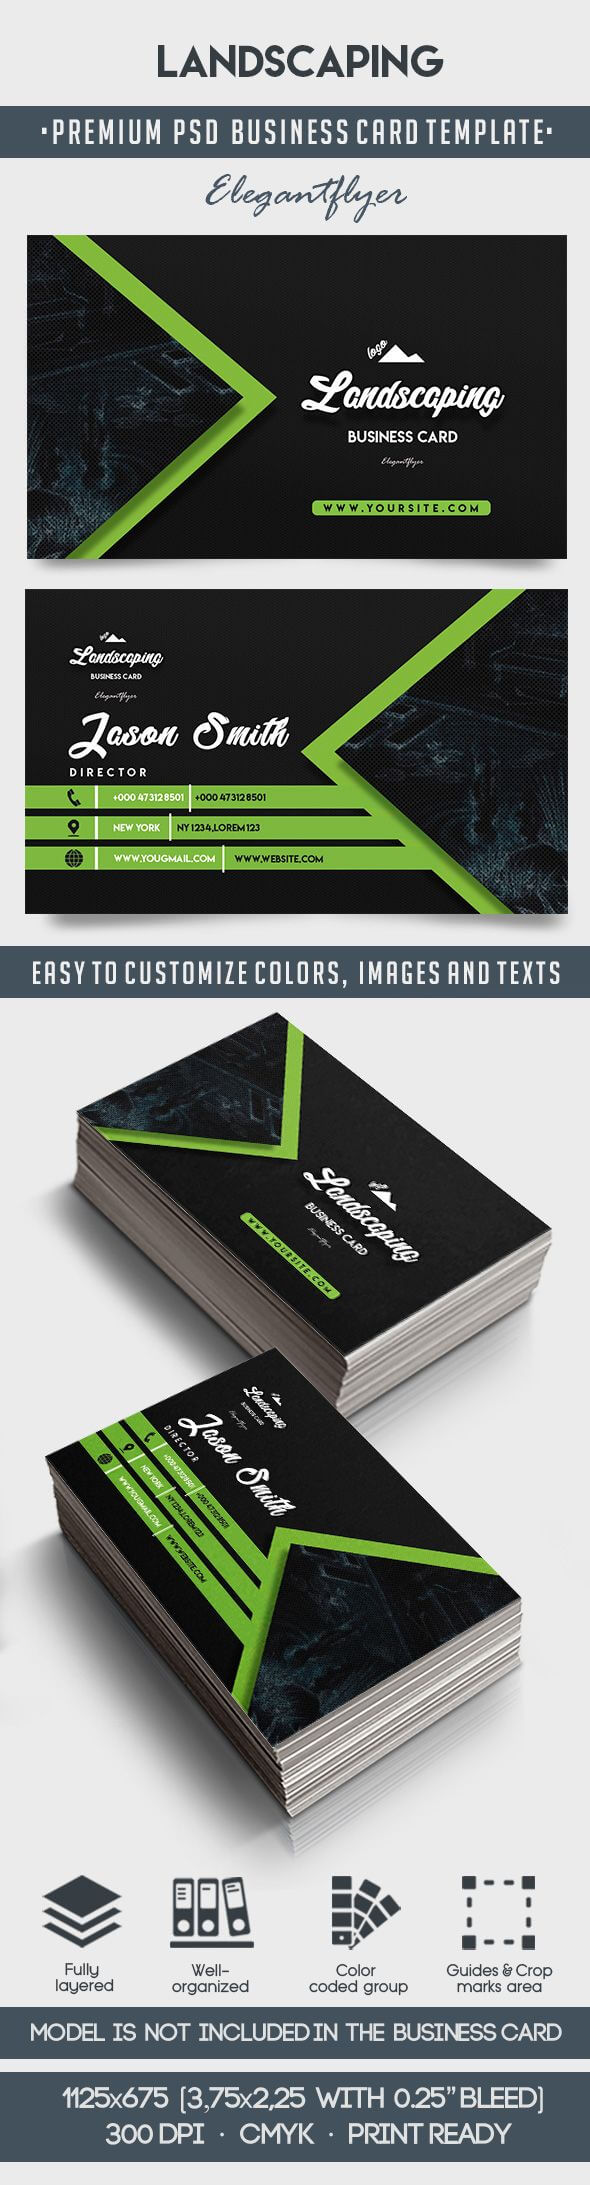 Landscaping – Business Card Templates Psd With Regard To Landscaping Business Card Template